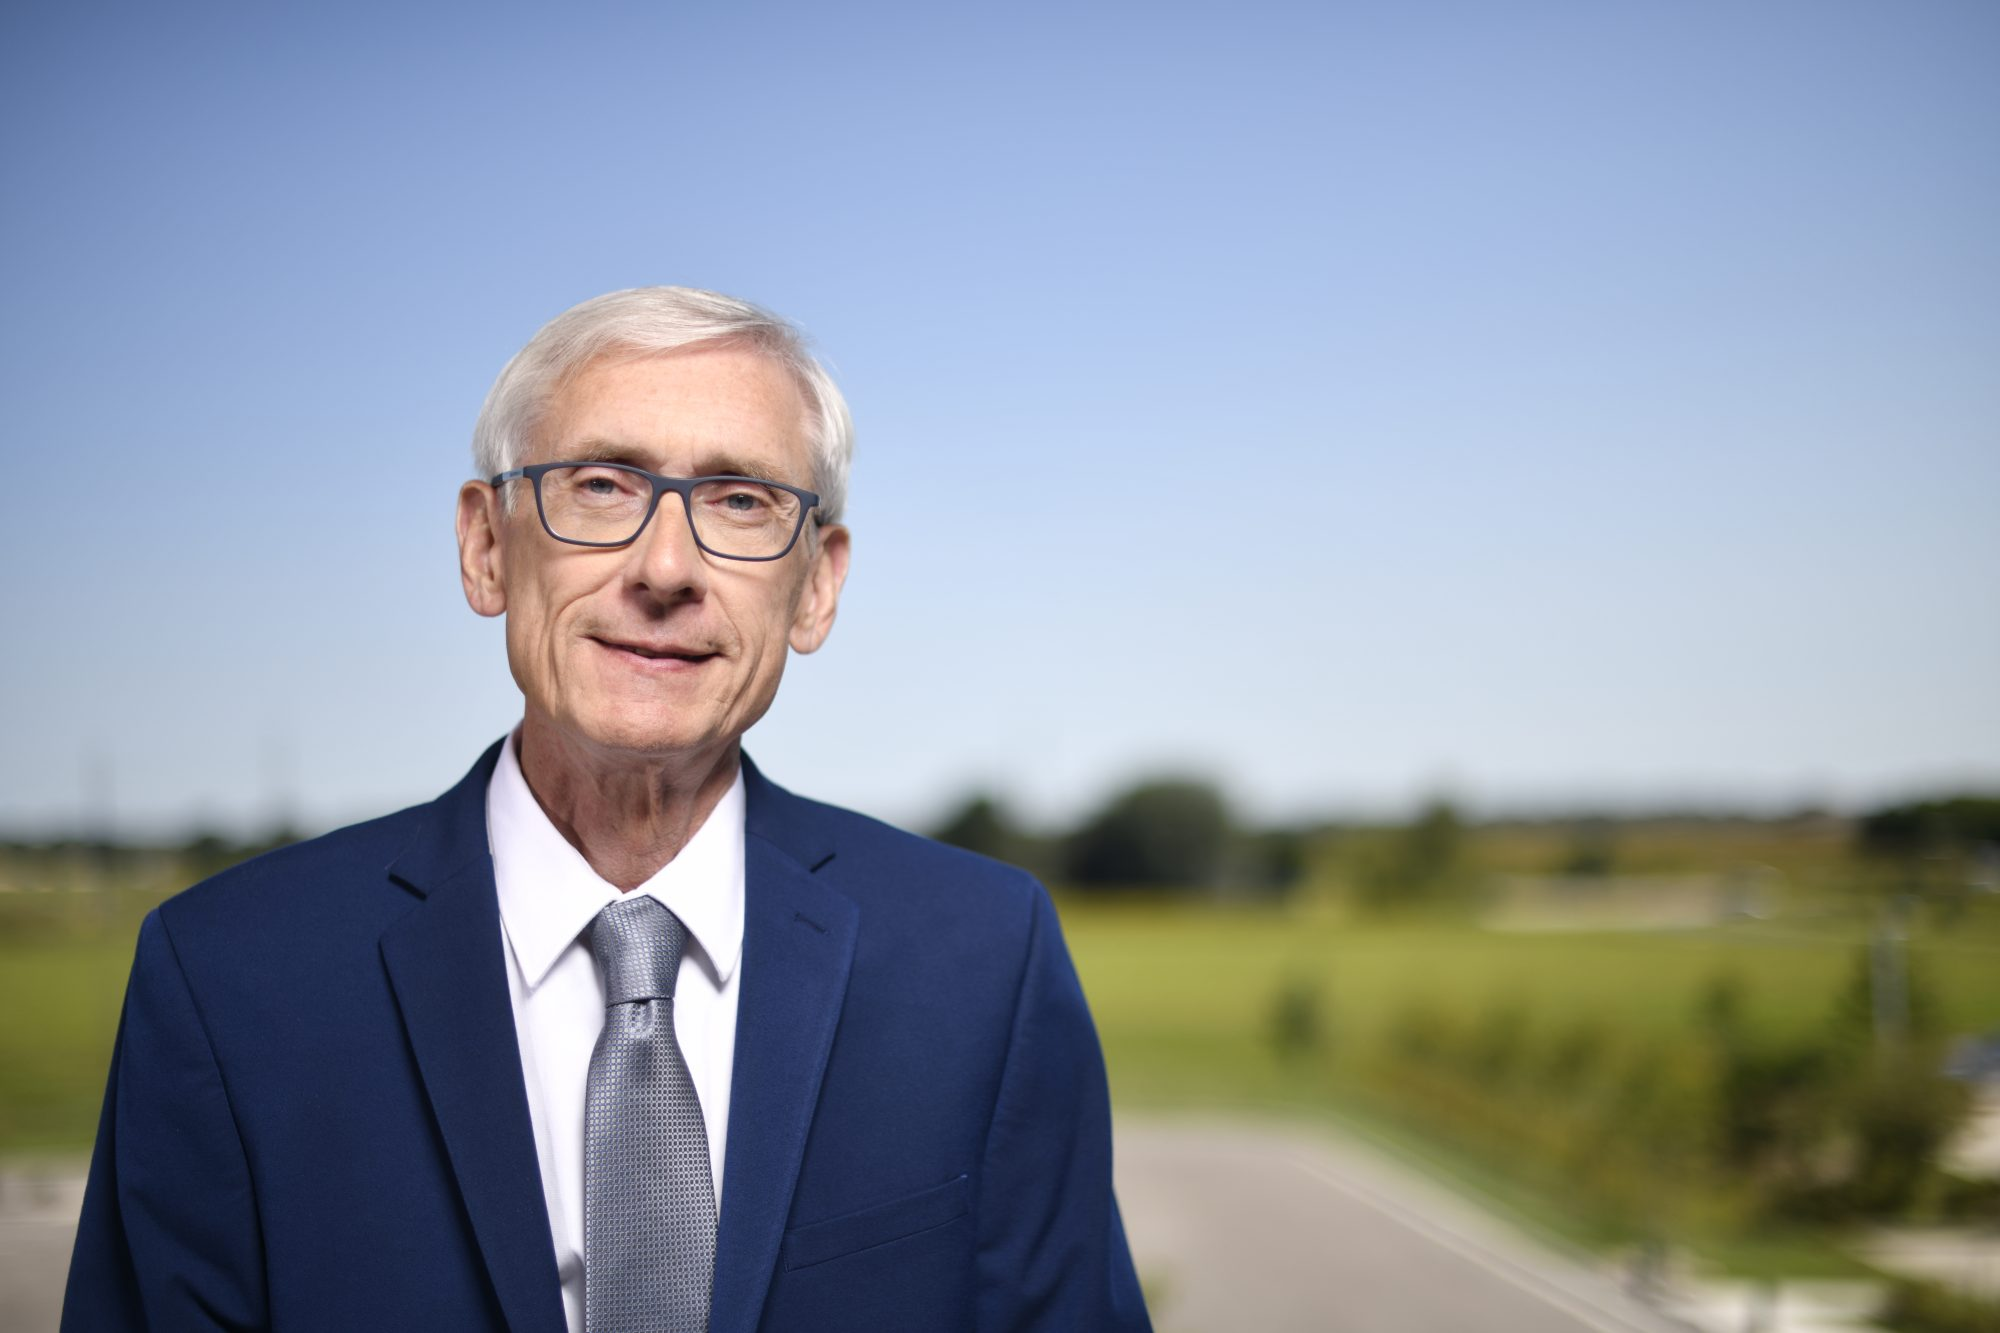 Governor Evers Reaffirms Commitment to Cutting Taxes for Middle-Class Families